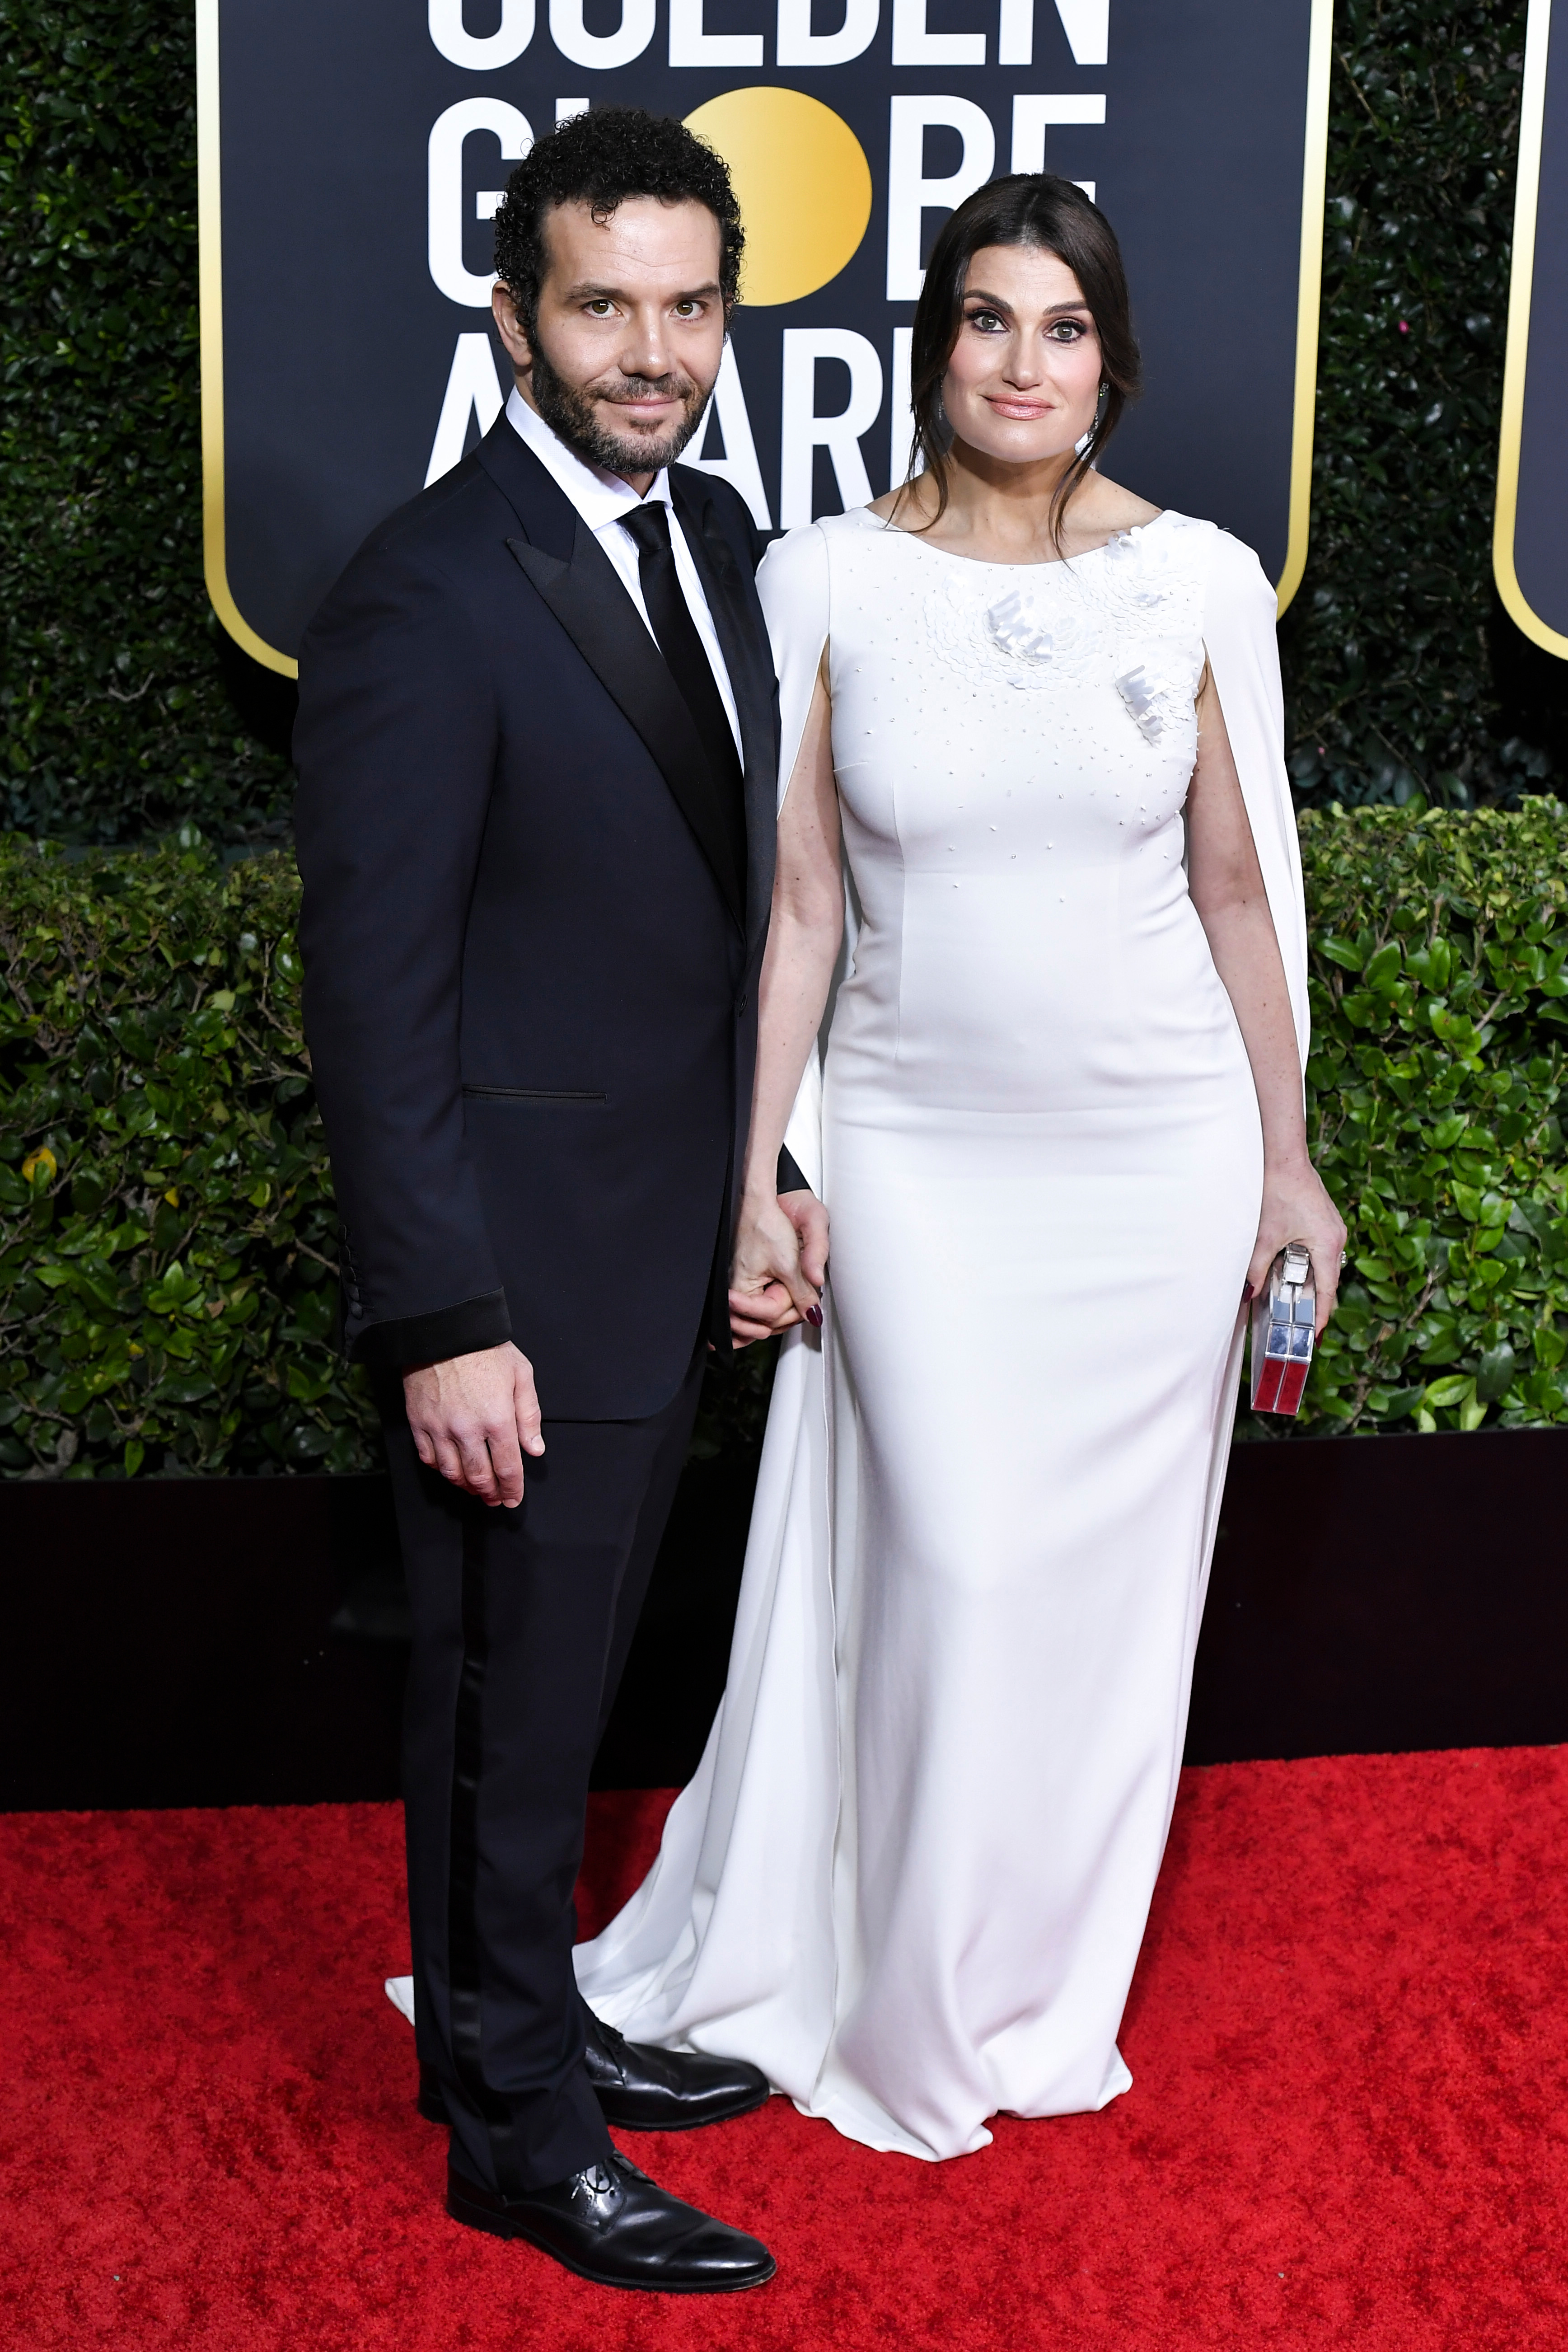 Aaron Lohr and Idina Menzel77th Annual Golden Globe Awards, Arrivals, Los Angeles, USA - 05 Jan 2020